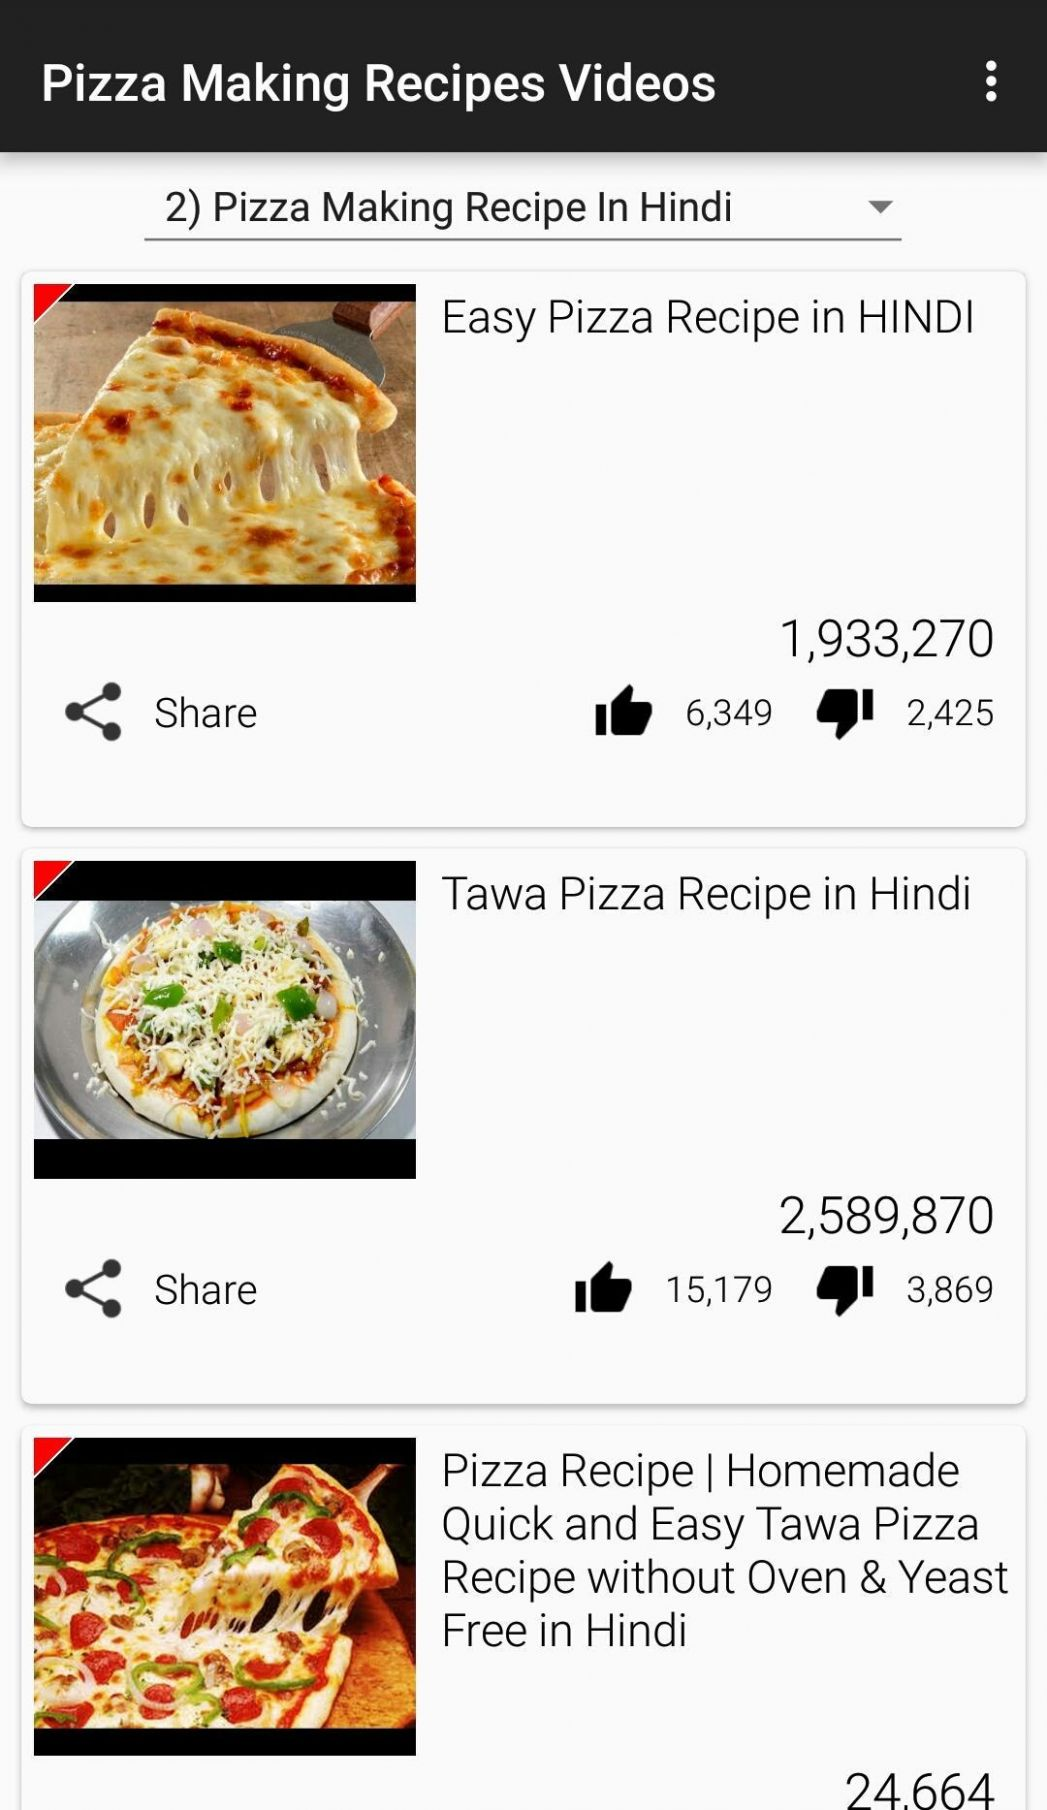 Pizza Making Recipes App Video for Android - APK Download - Pizza Recipes Video Download